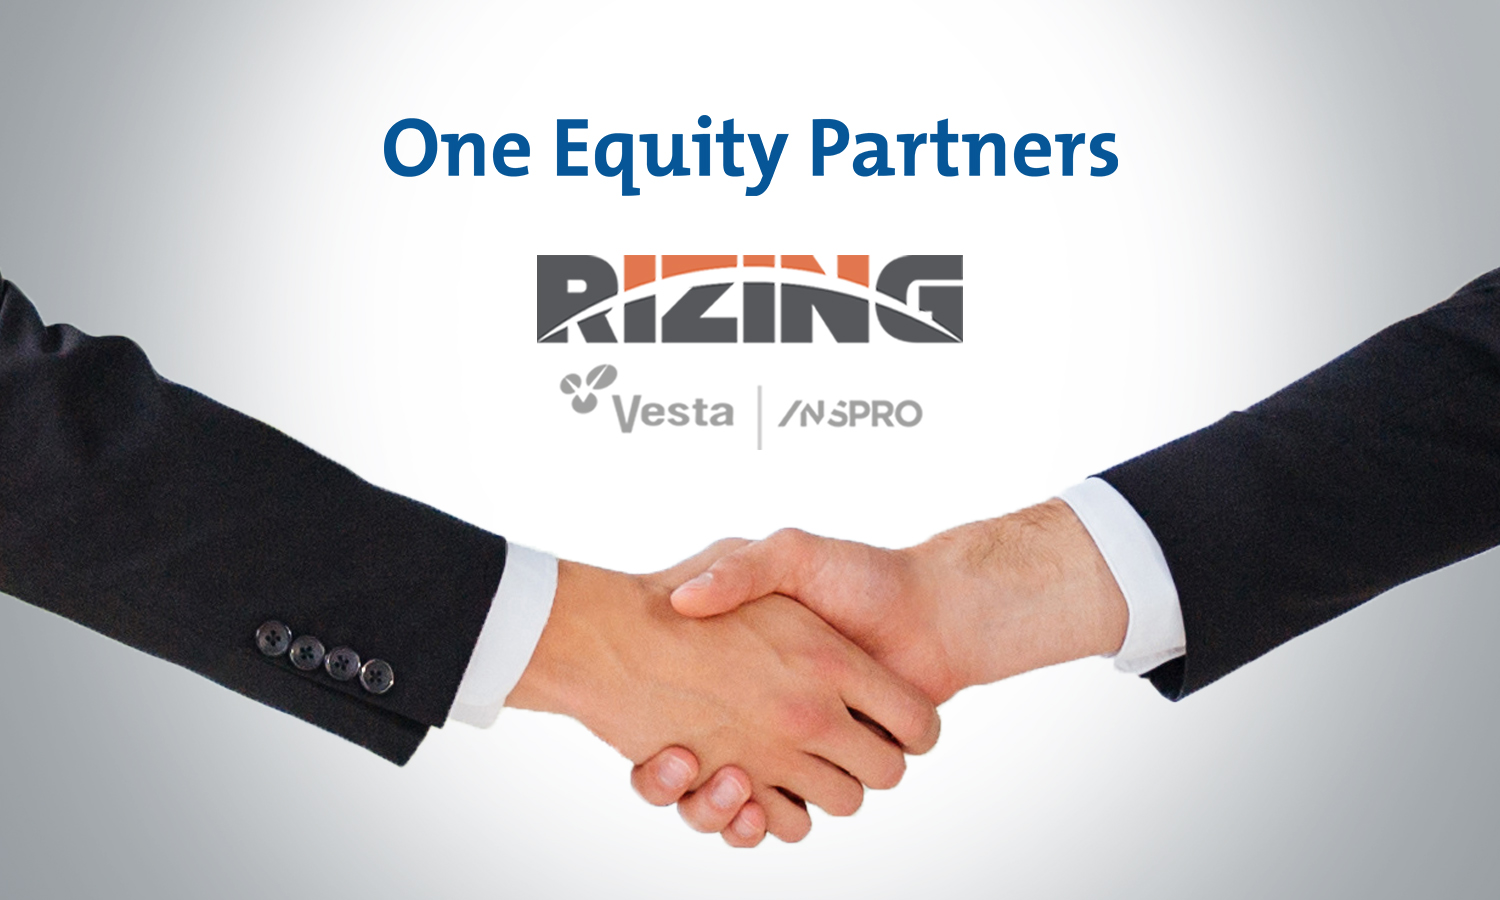 One Equity Partners Acquires Rizing, a Leading SAP-Focused Systems Integrator